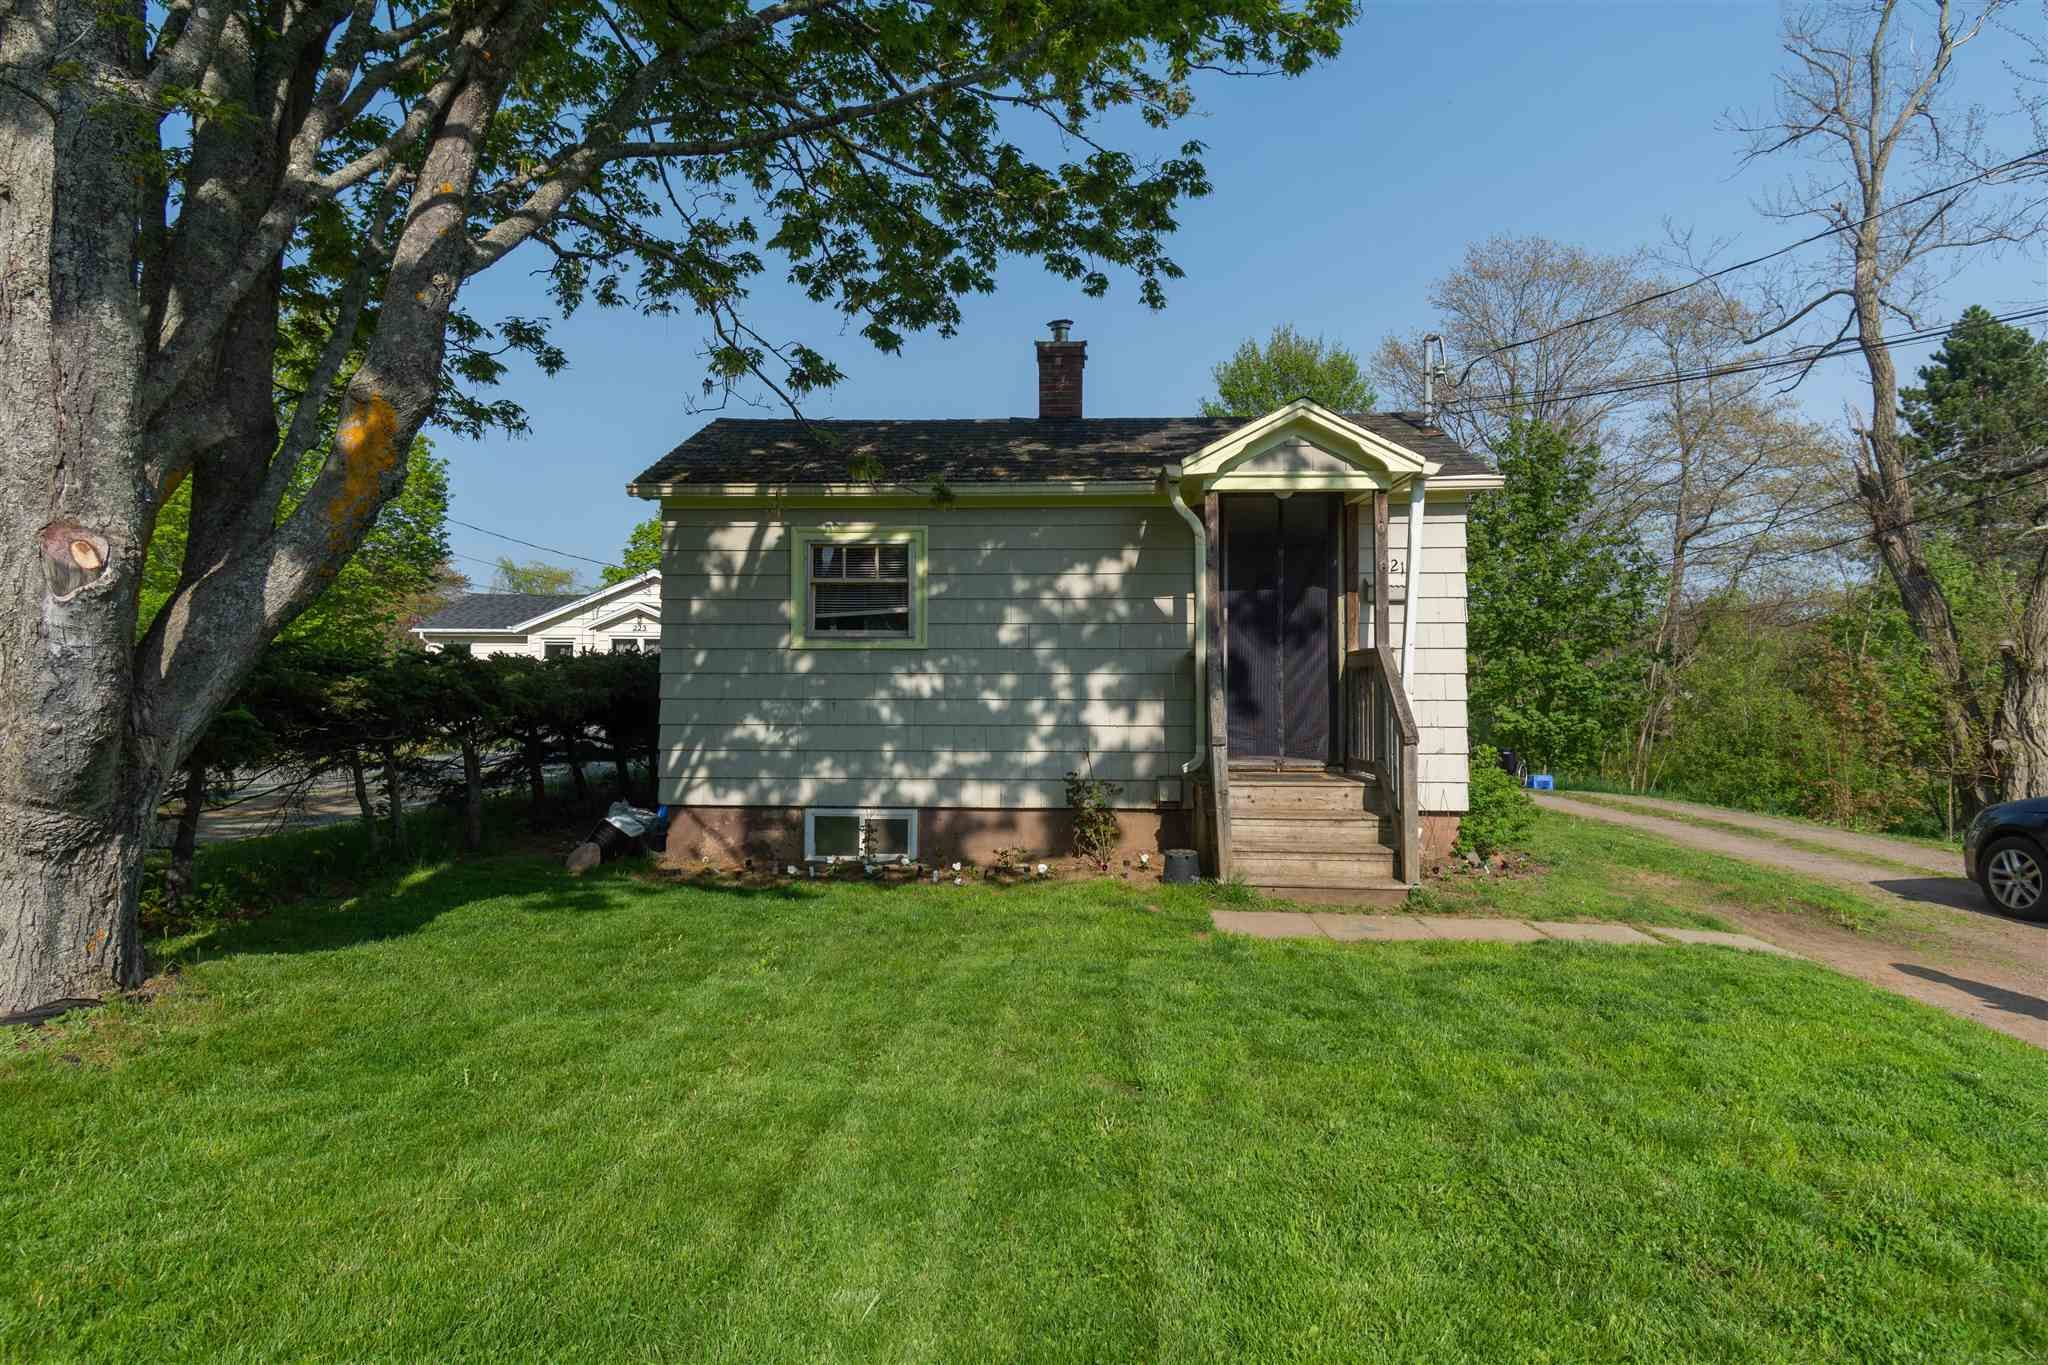 Main Photo: 219-221 Oakdene Avenue in North Kentville: 404-Kings County Residential for sale (Annapolis Valley)  : MLS®# 202112719